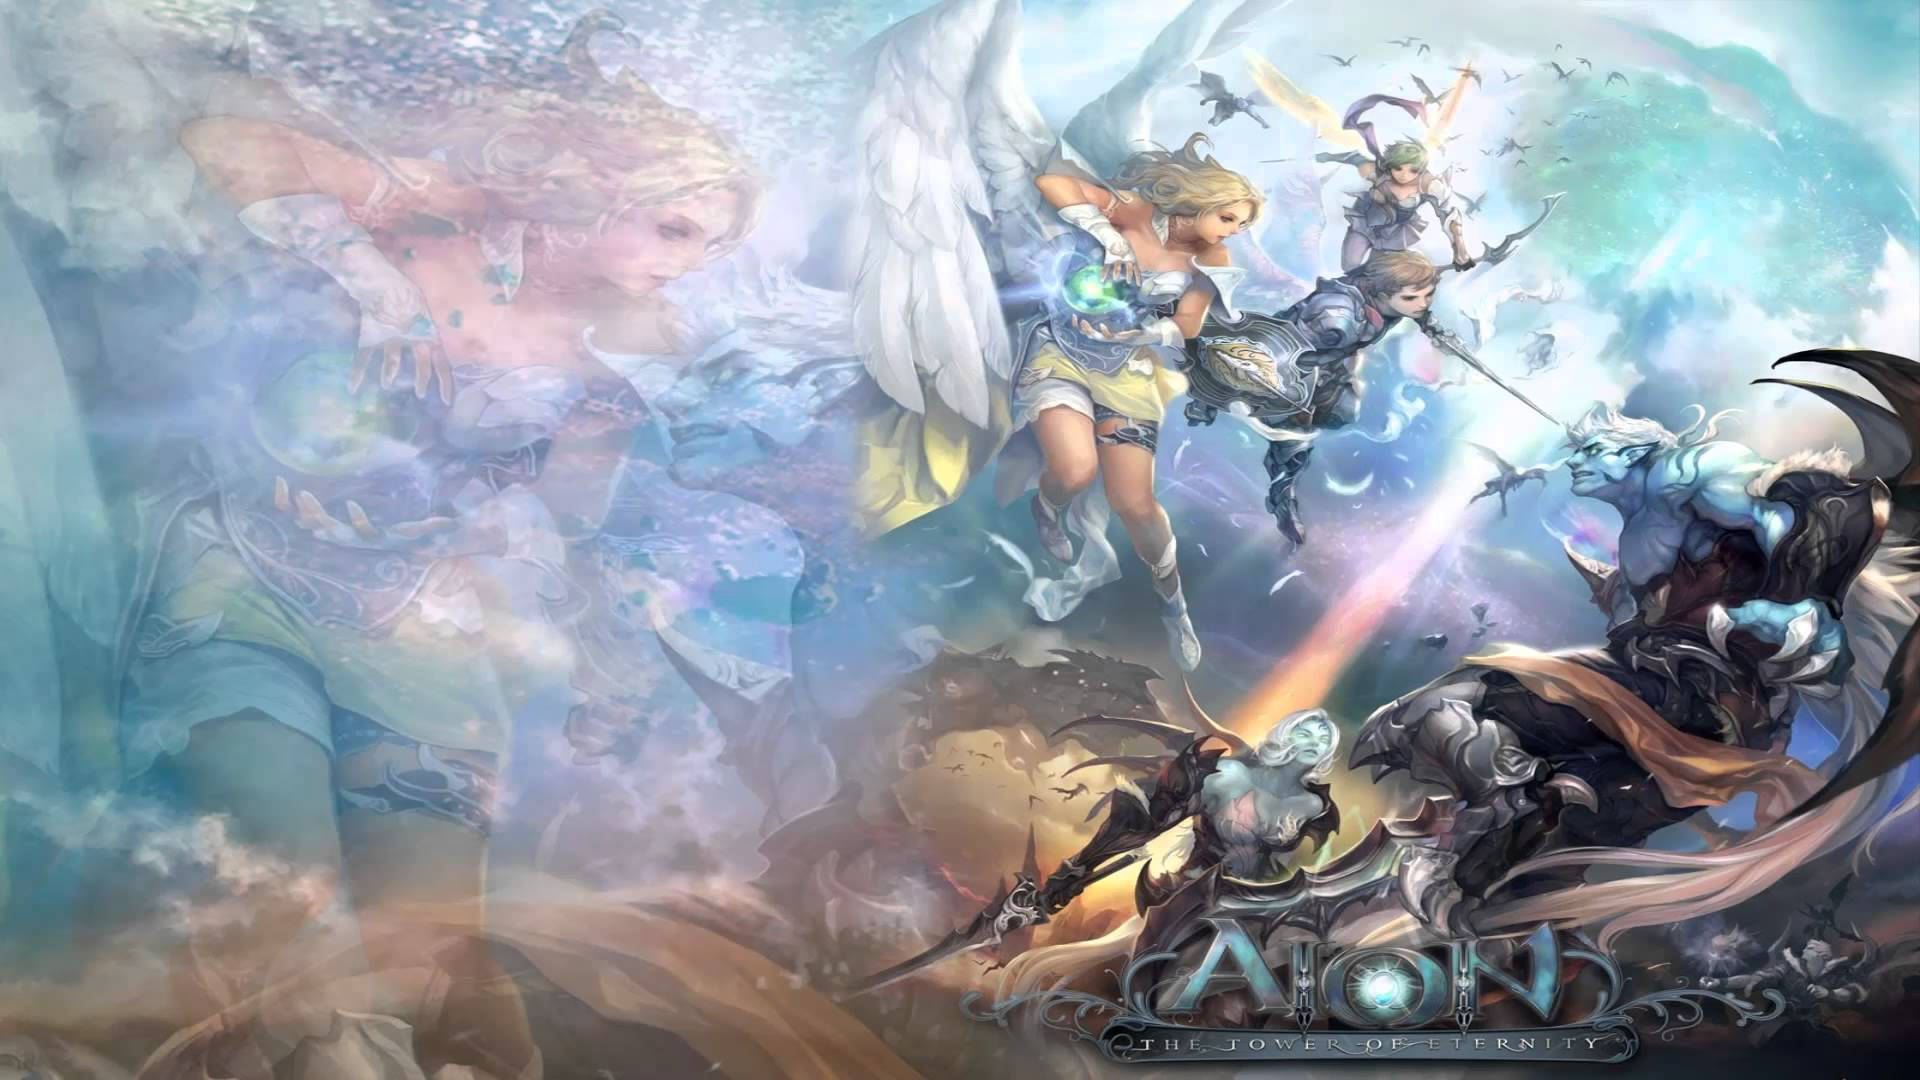 Aion: Tower Of Eternity Backgrounds, Compatible - PC, Mobile, Gadgets  1920x1080 px